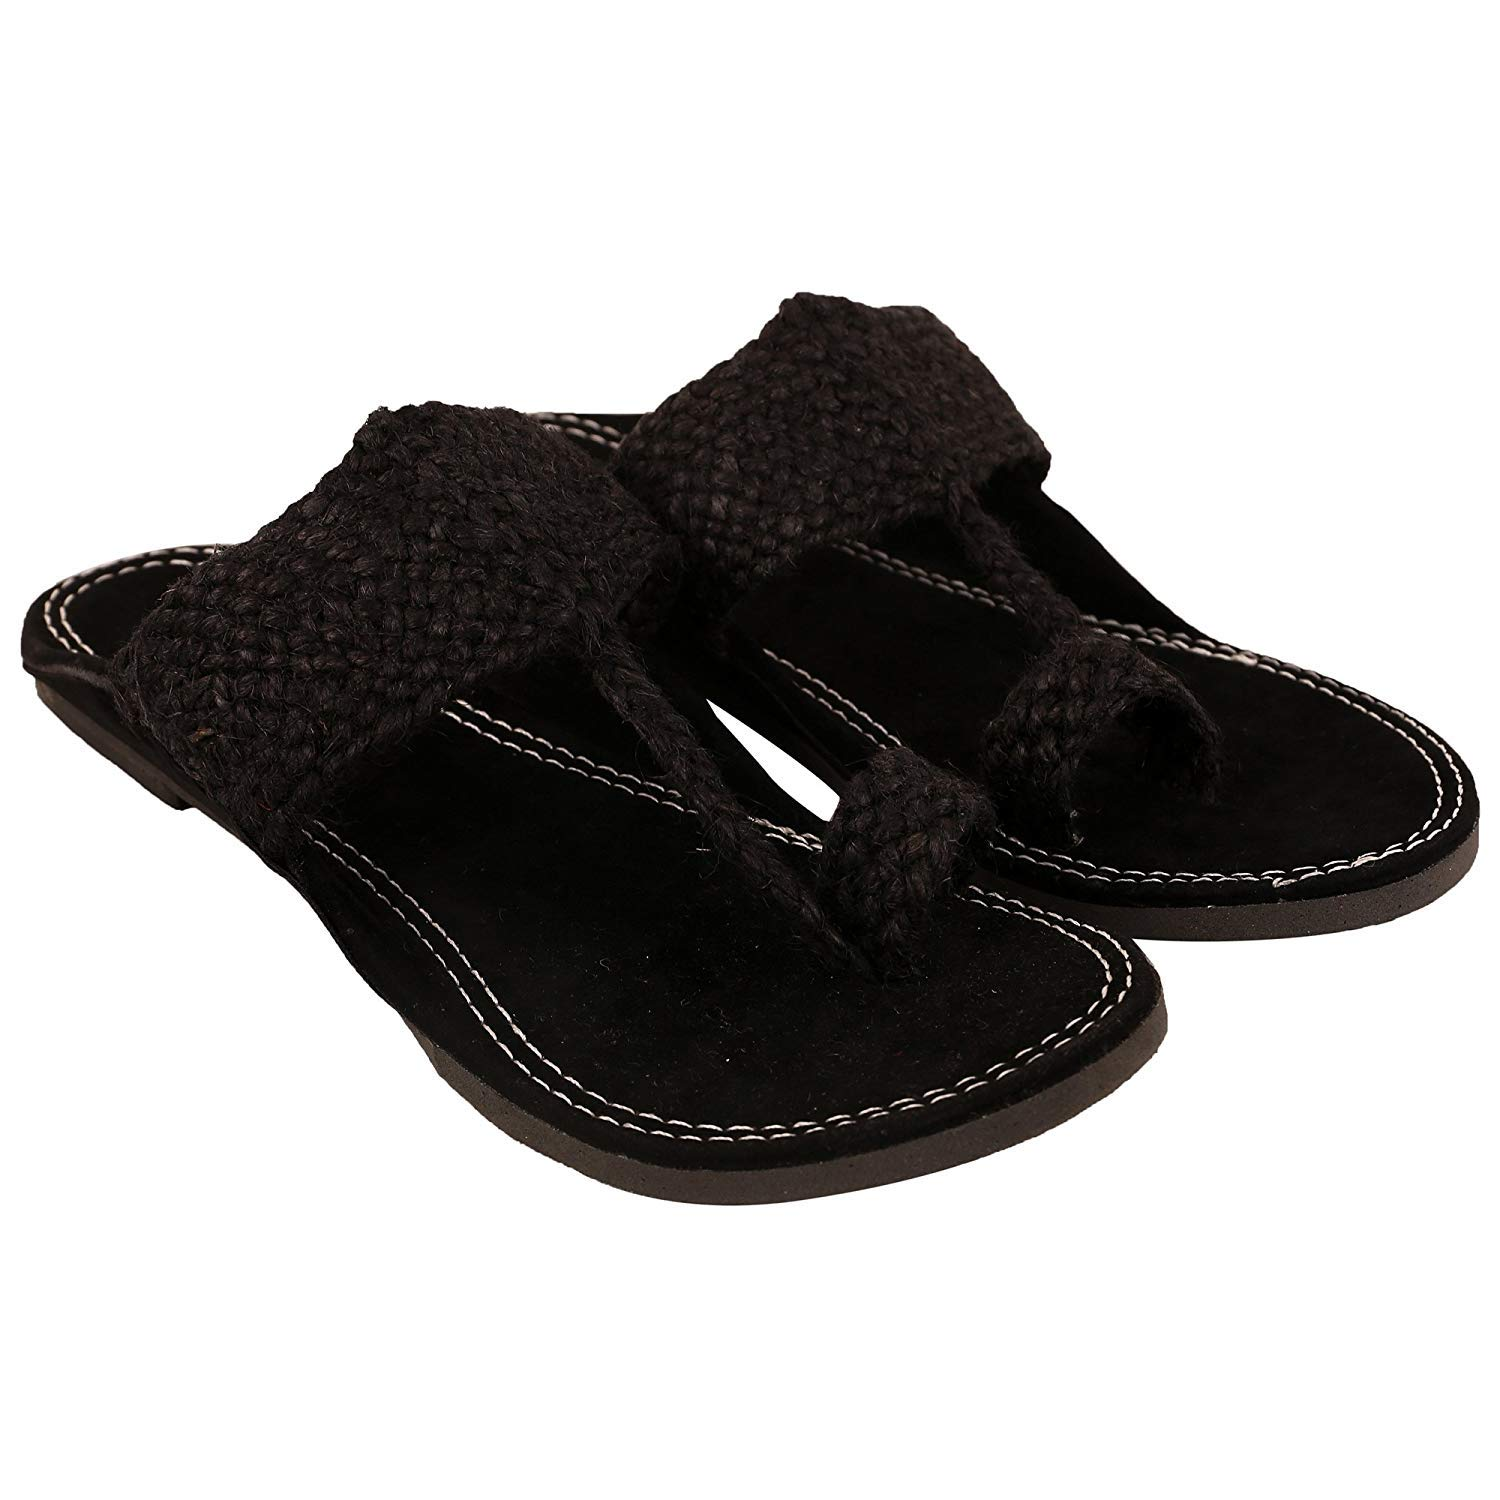 5960eb7619c71 ShreeCharbhuja Indian Rajasthani Ethnic Men's Jute Slipper Black ...